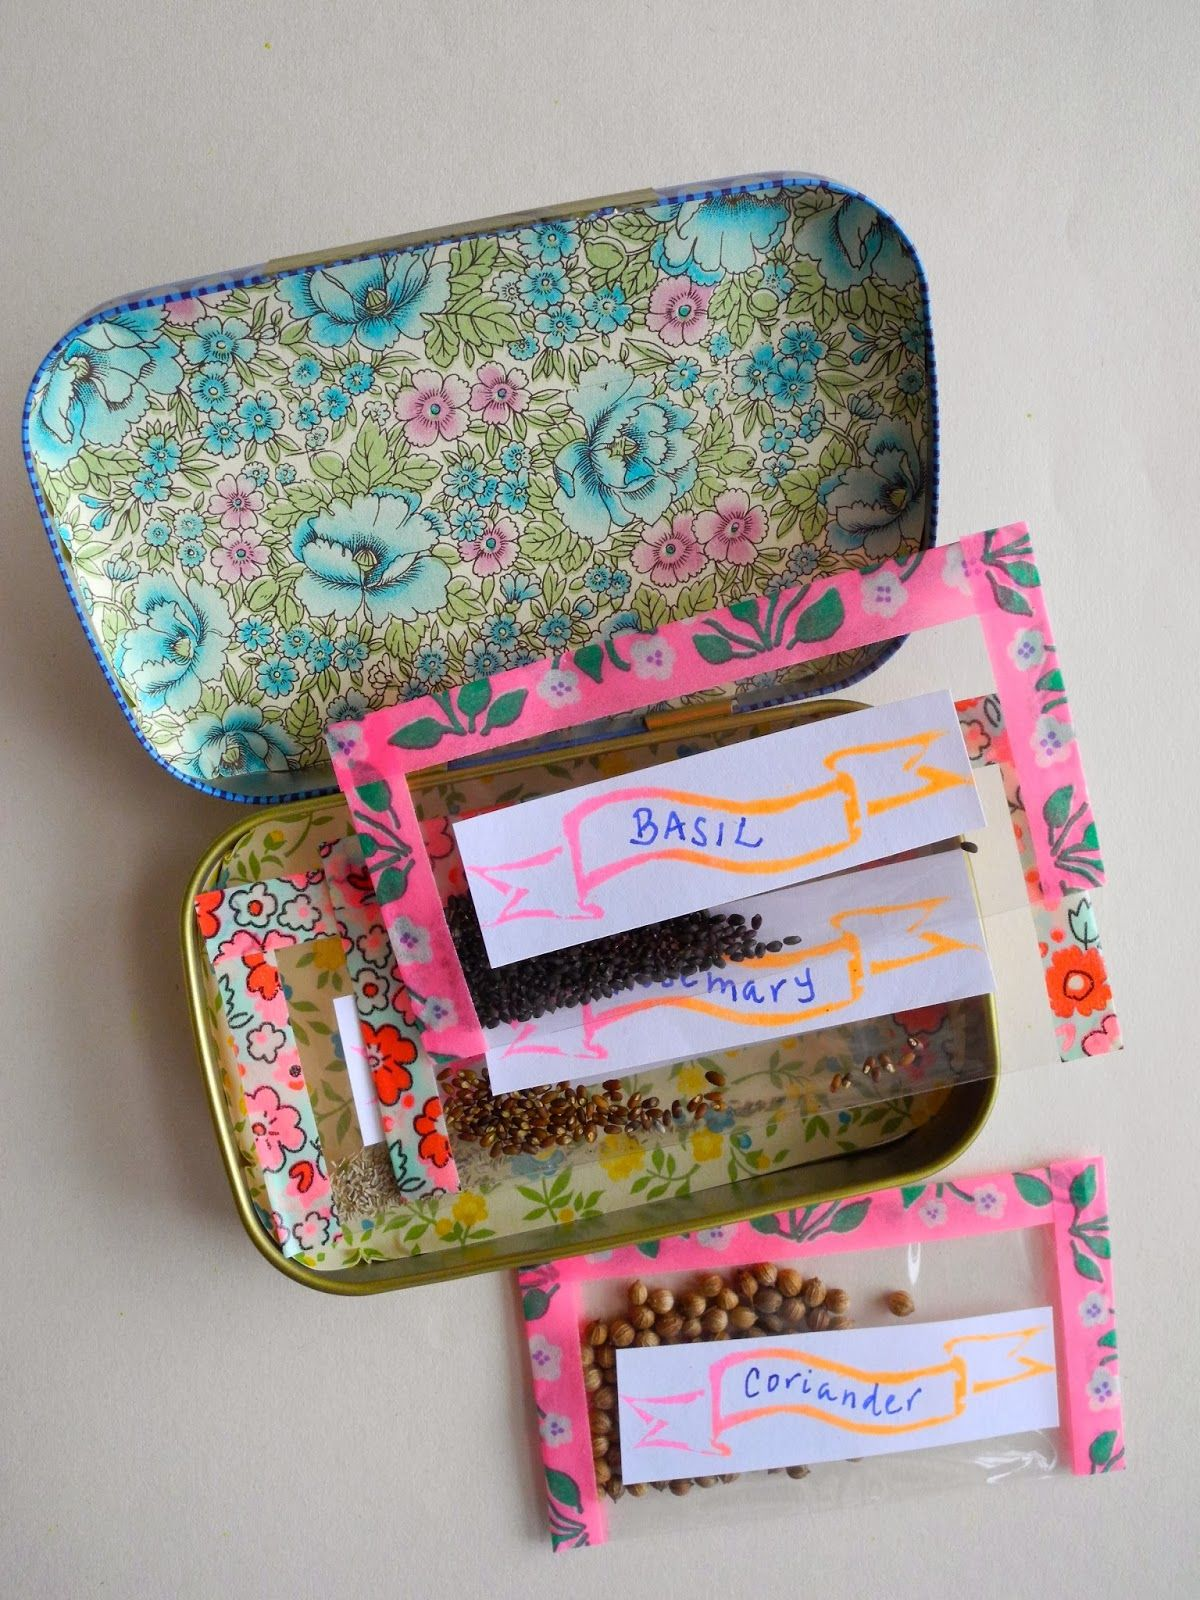 Seeds In Small Bags To Send Via Air Mail Tin Box Great Gift For